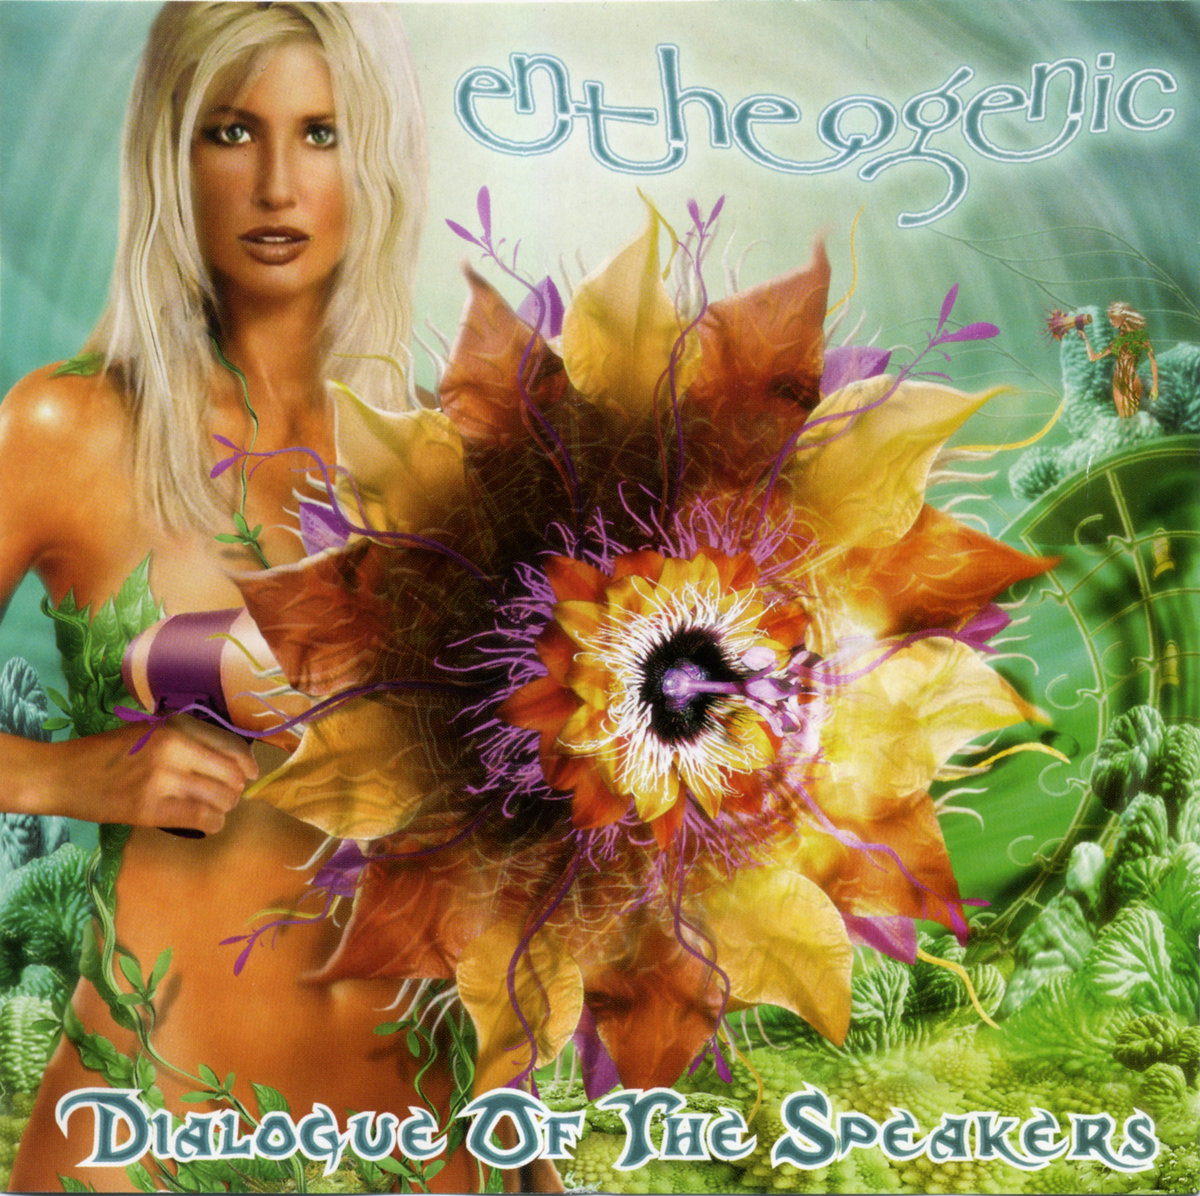 entheogenic download